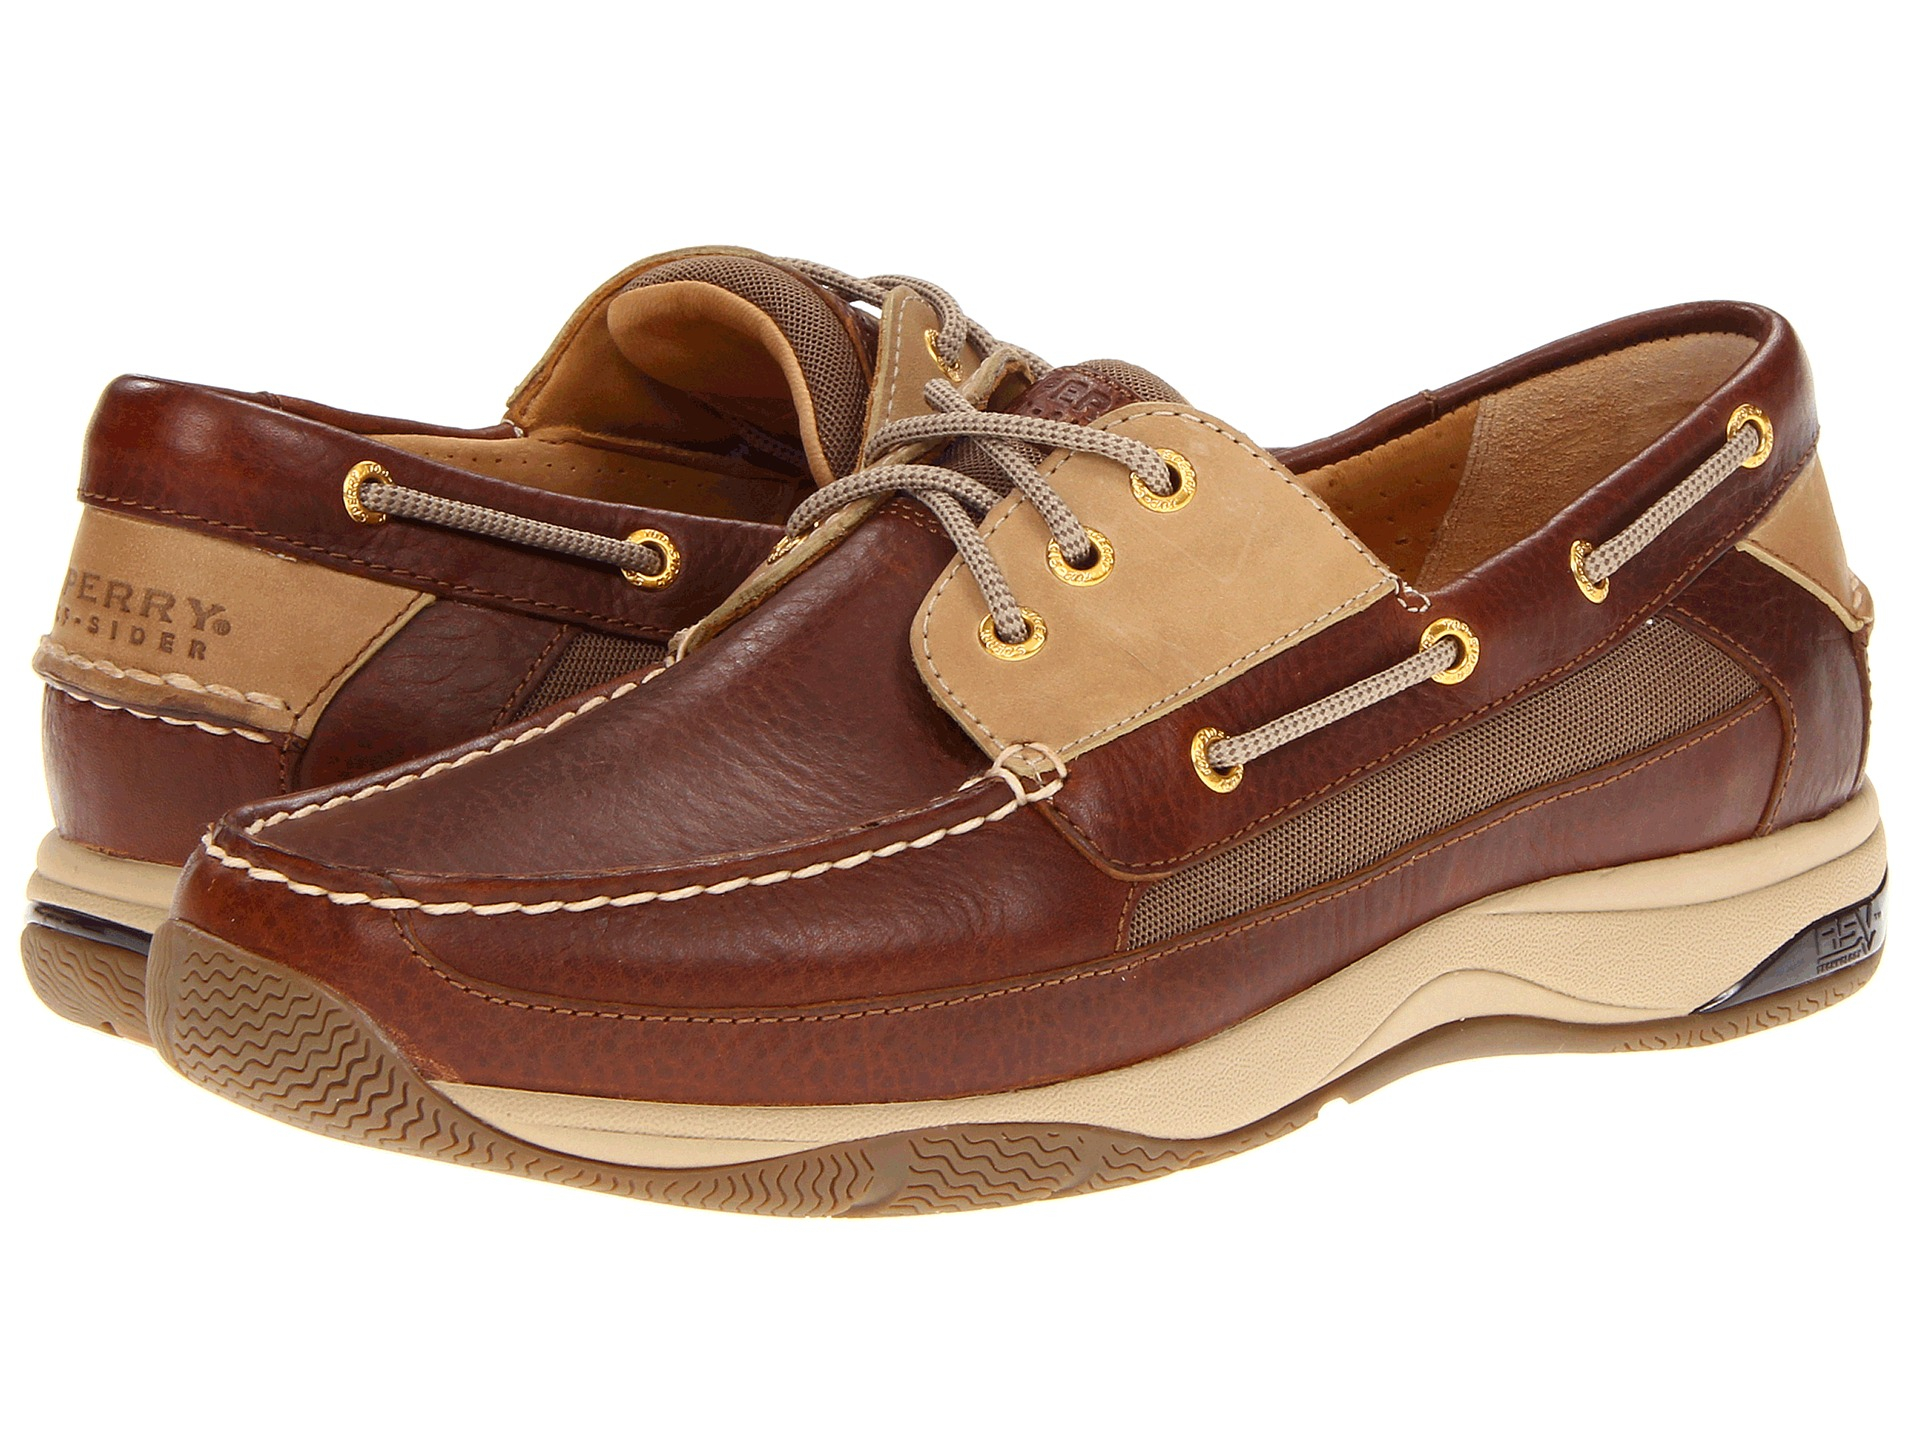 Sperry Top Sider Billfish Sport Boat Shoe